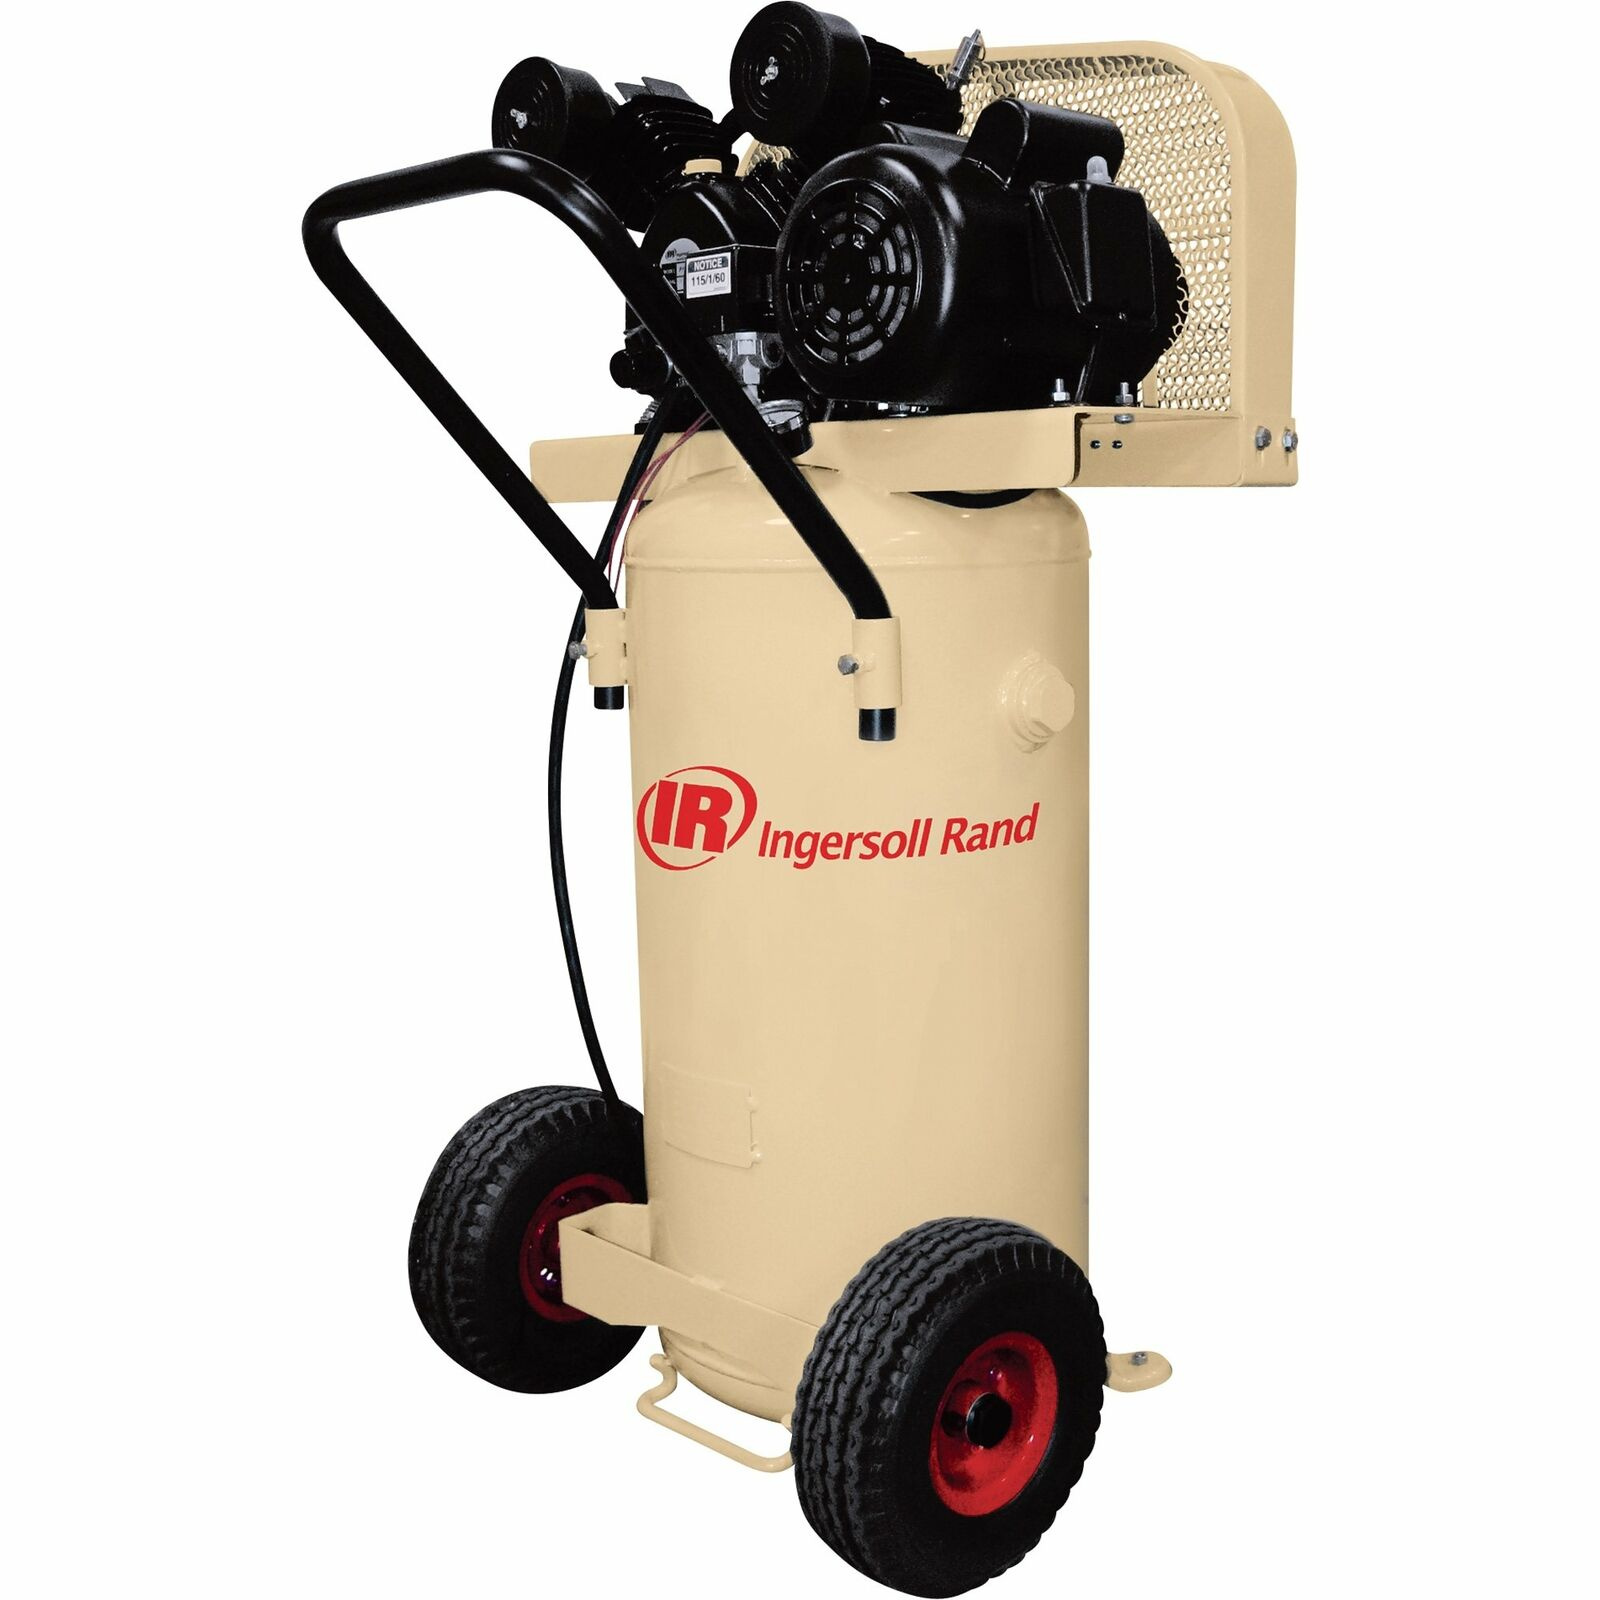 Ingersoll Rand Garage Mate-2 HP 5.2 CFM #42663401. Available Now for 679.99